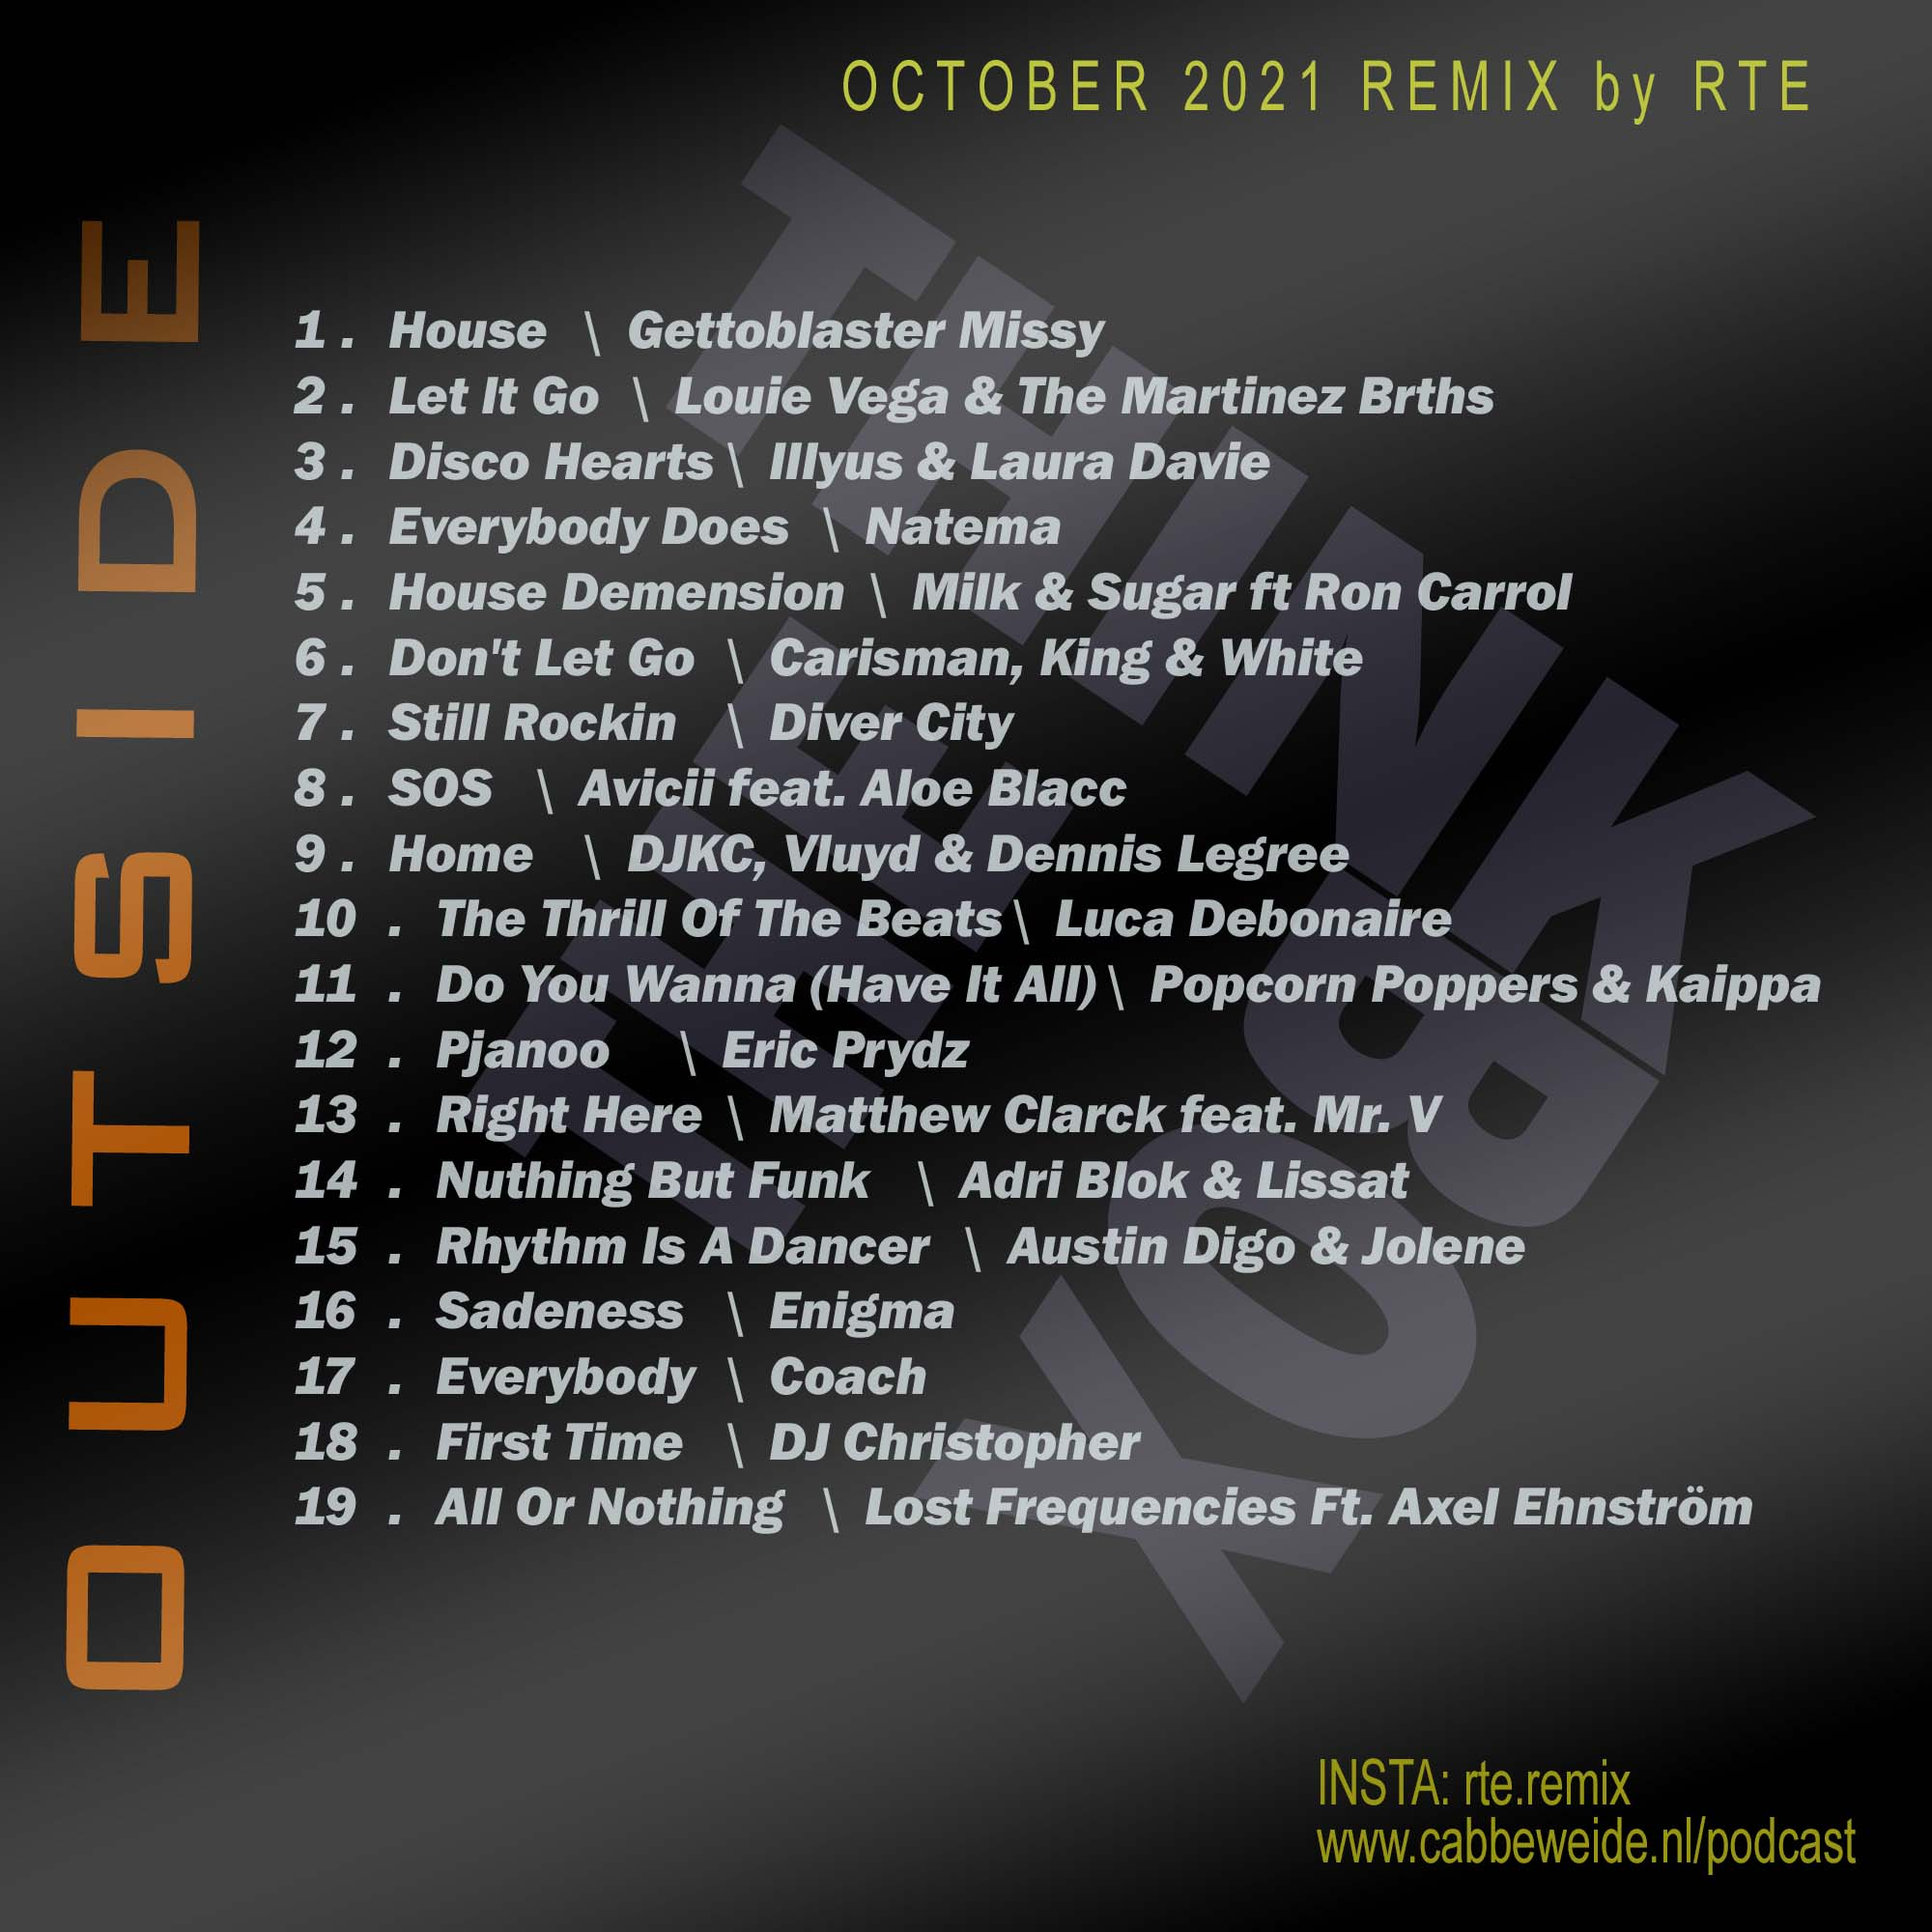 OCTOBER 2021 REMIX by RTE